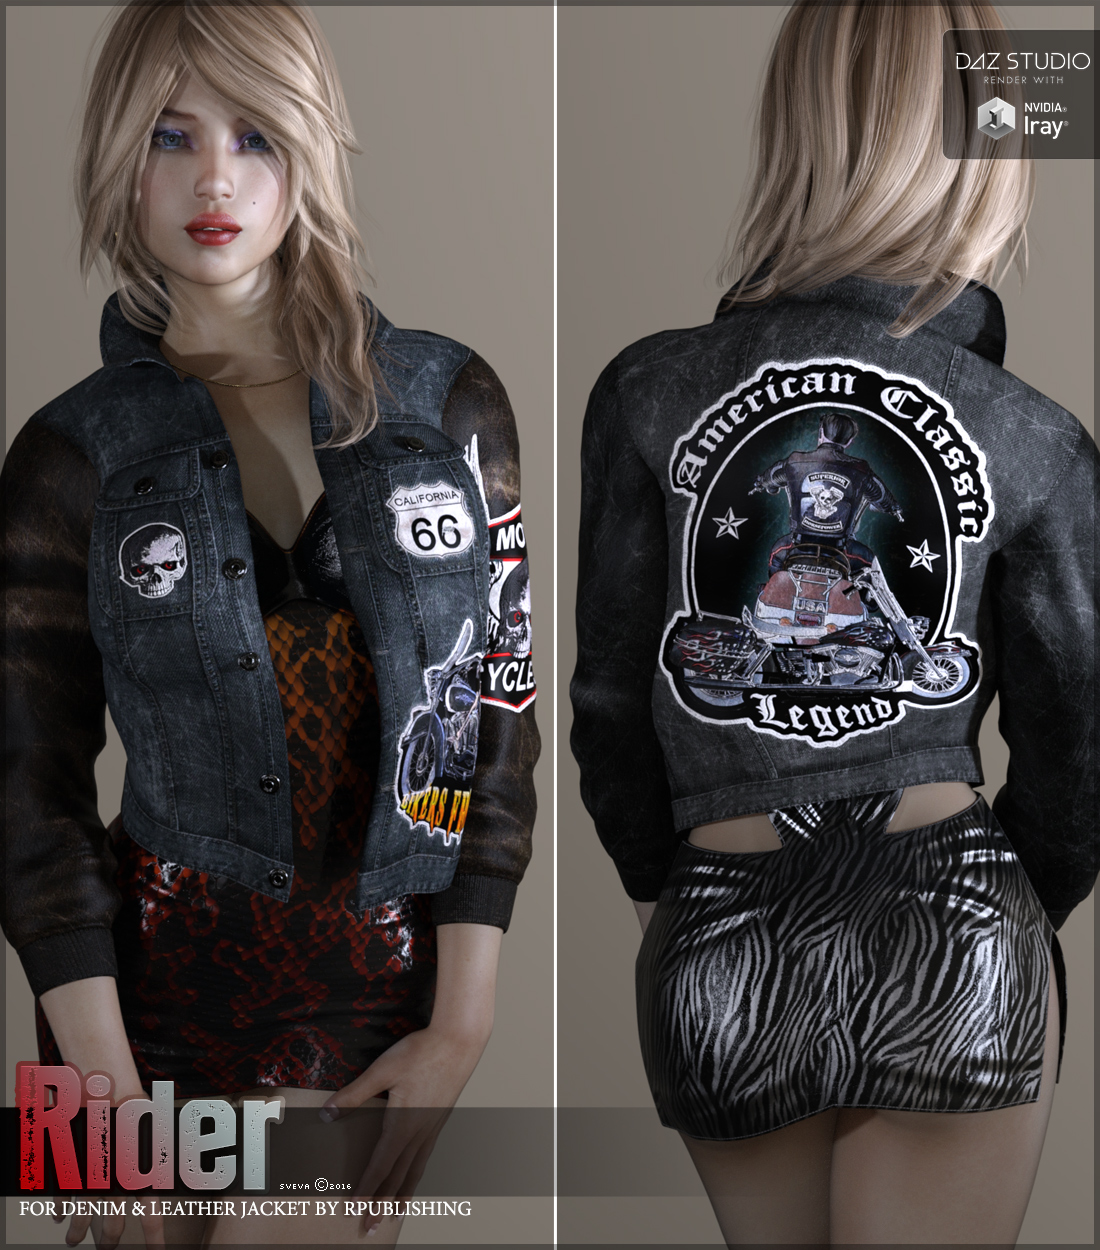 Rider for Denim and Leather Jacket by Sveva